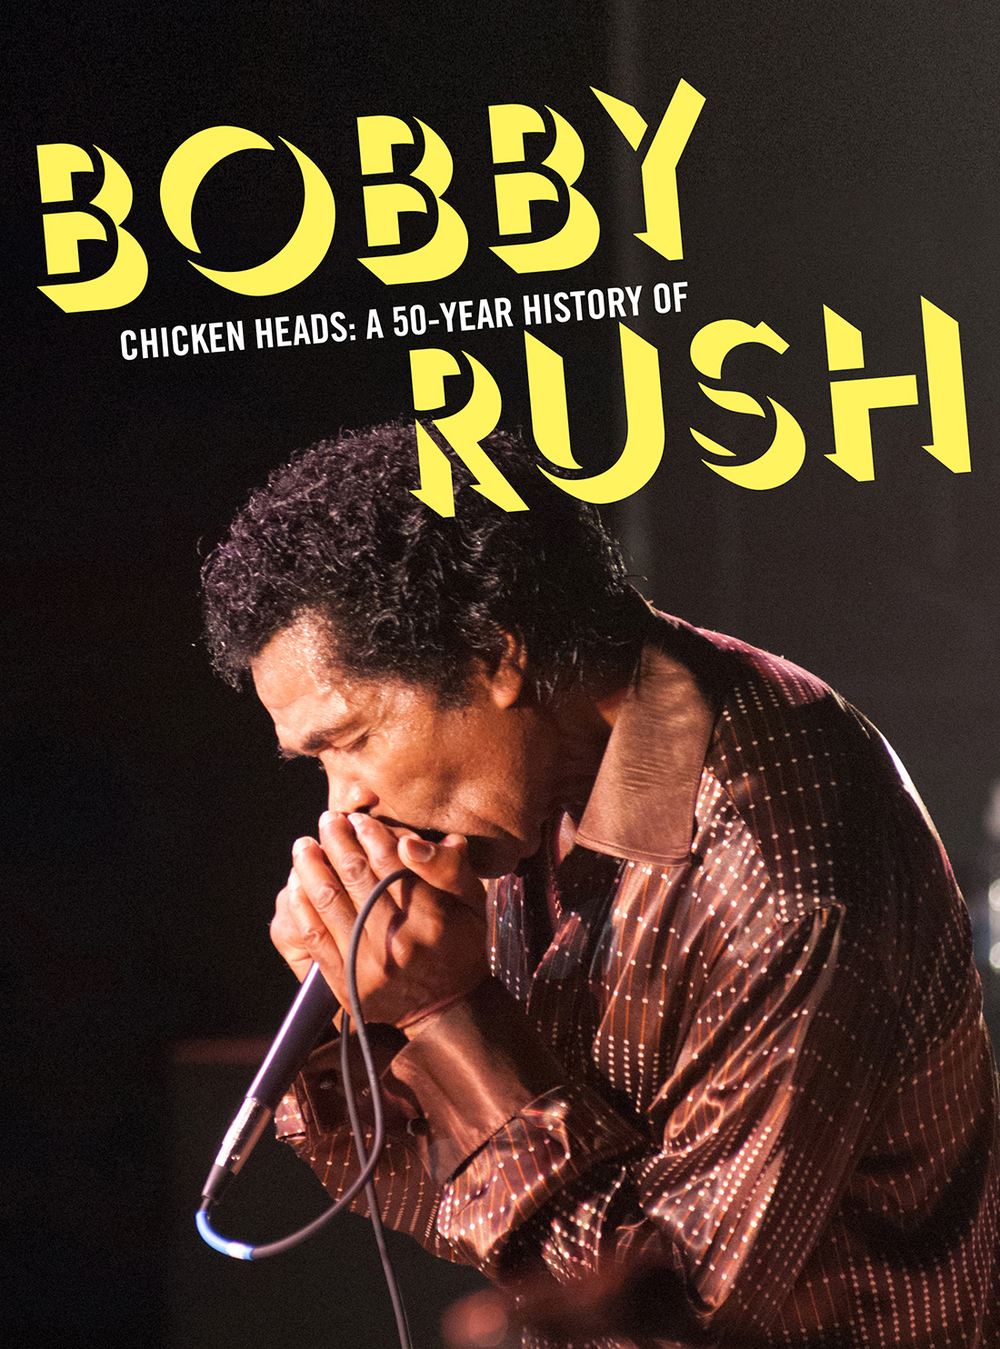 Bobby Rush - Chicken Heads: A 50-Year History Of Bobby Rush  Release Date: November 27, 2015 Label: Omnivore Recordings  SERVICE: Restoration, Mastering NUMBER OF DISCS: 4 GENRE: R&B, Funk, Soul FORMAT: CD   TRAILER